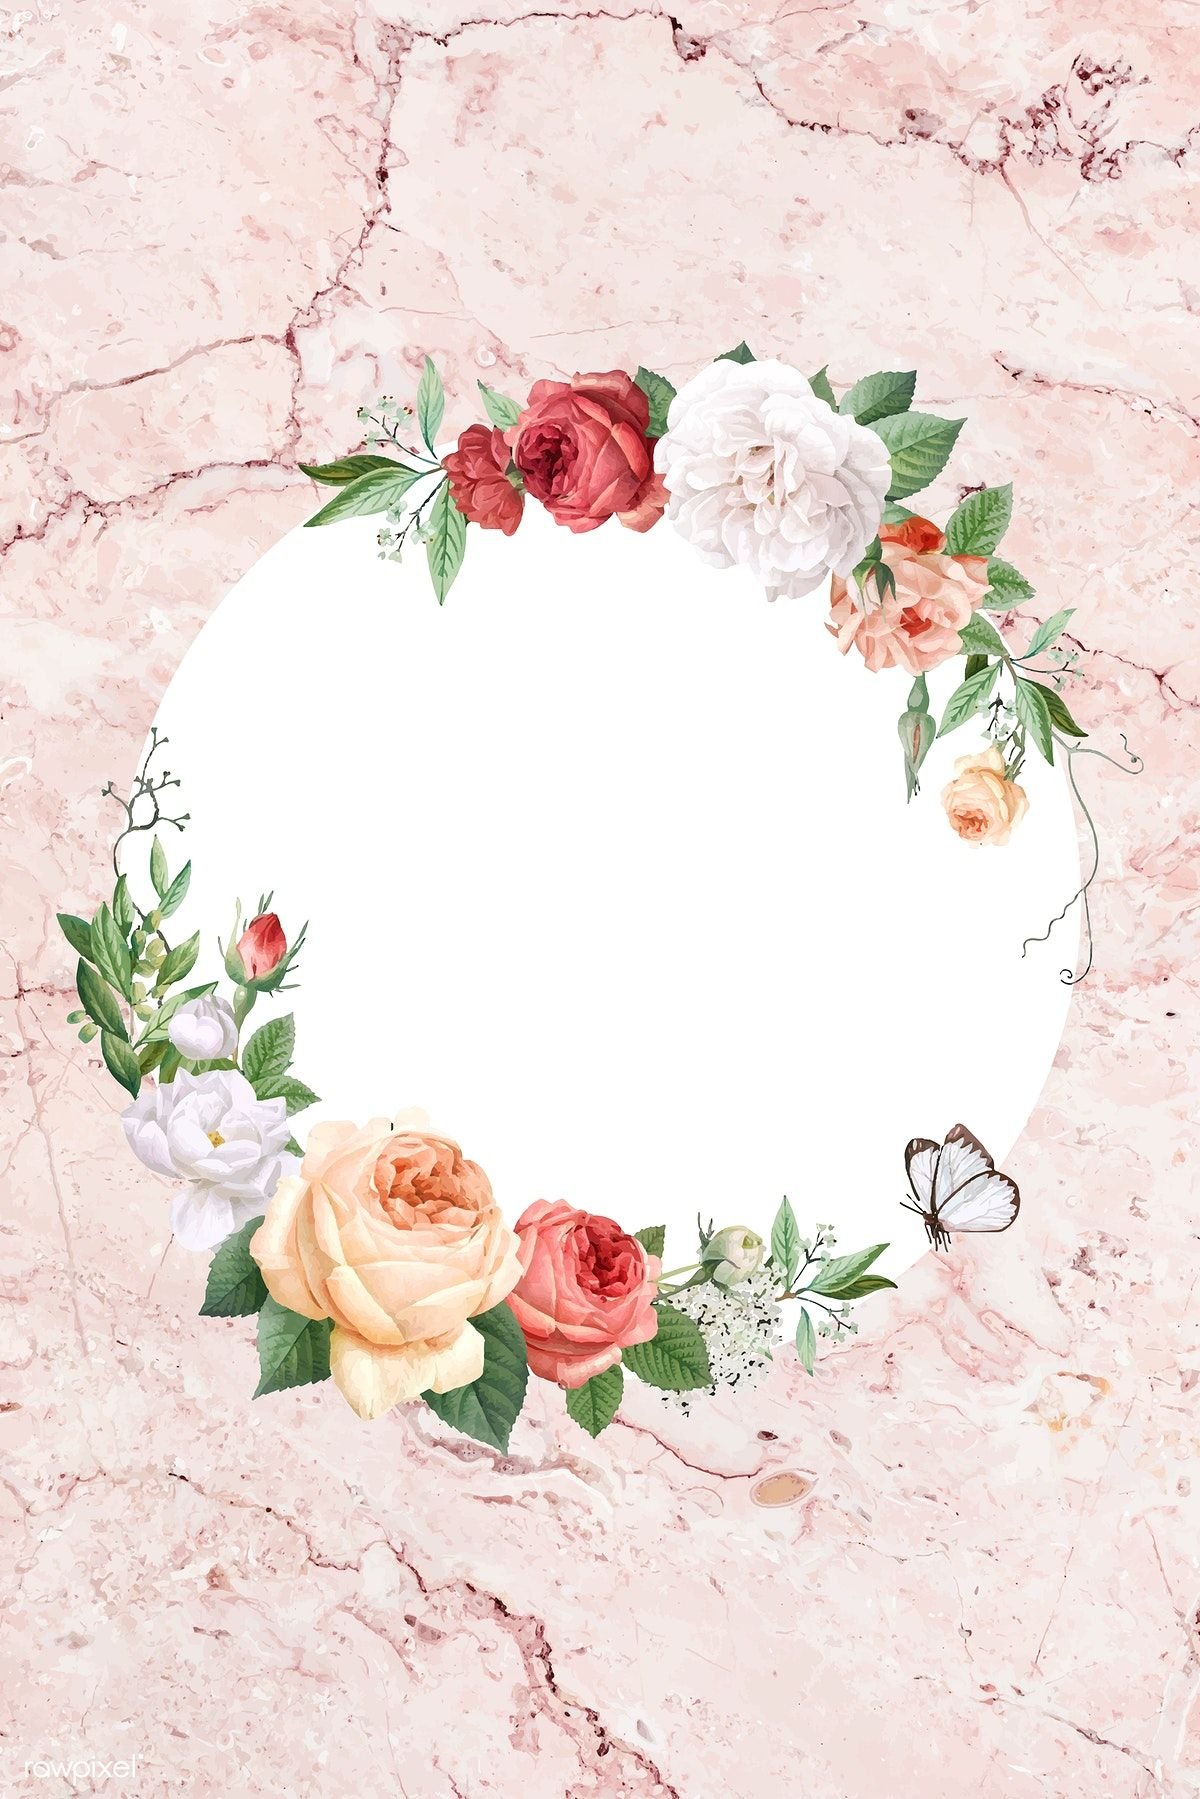 Floral frame on a marble background vector, 4k iphone and